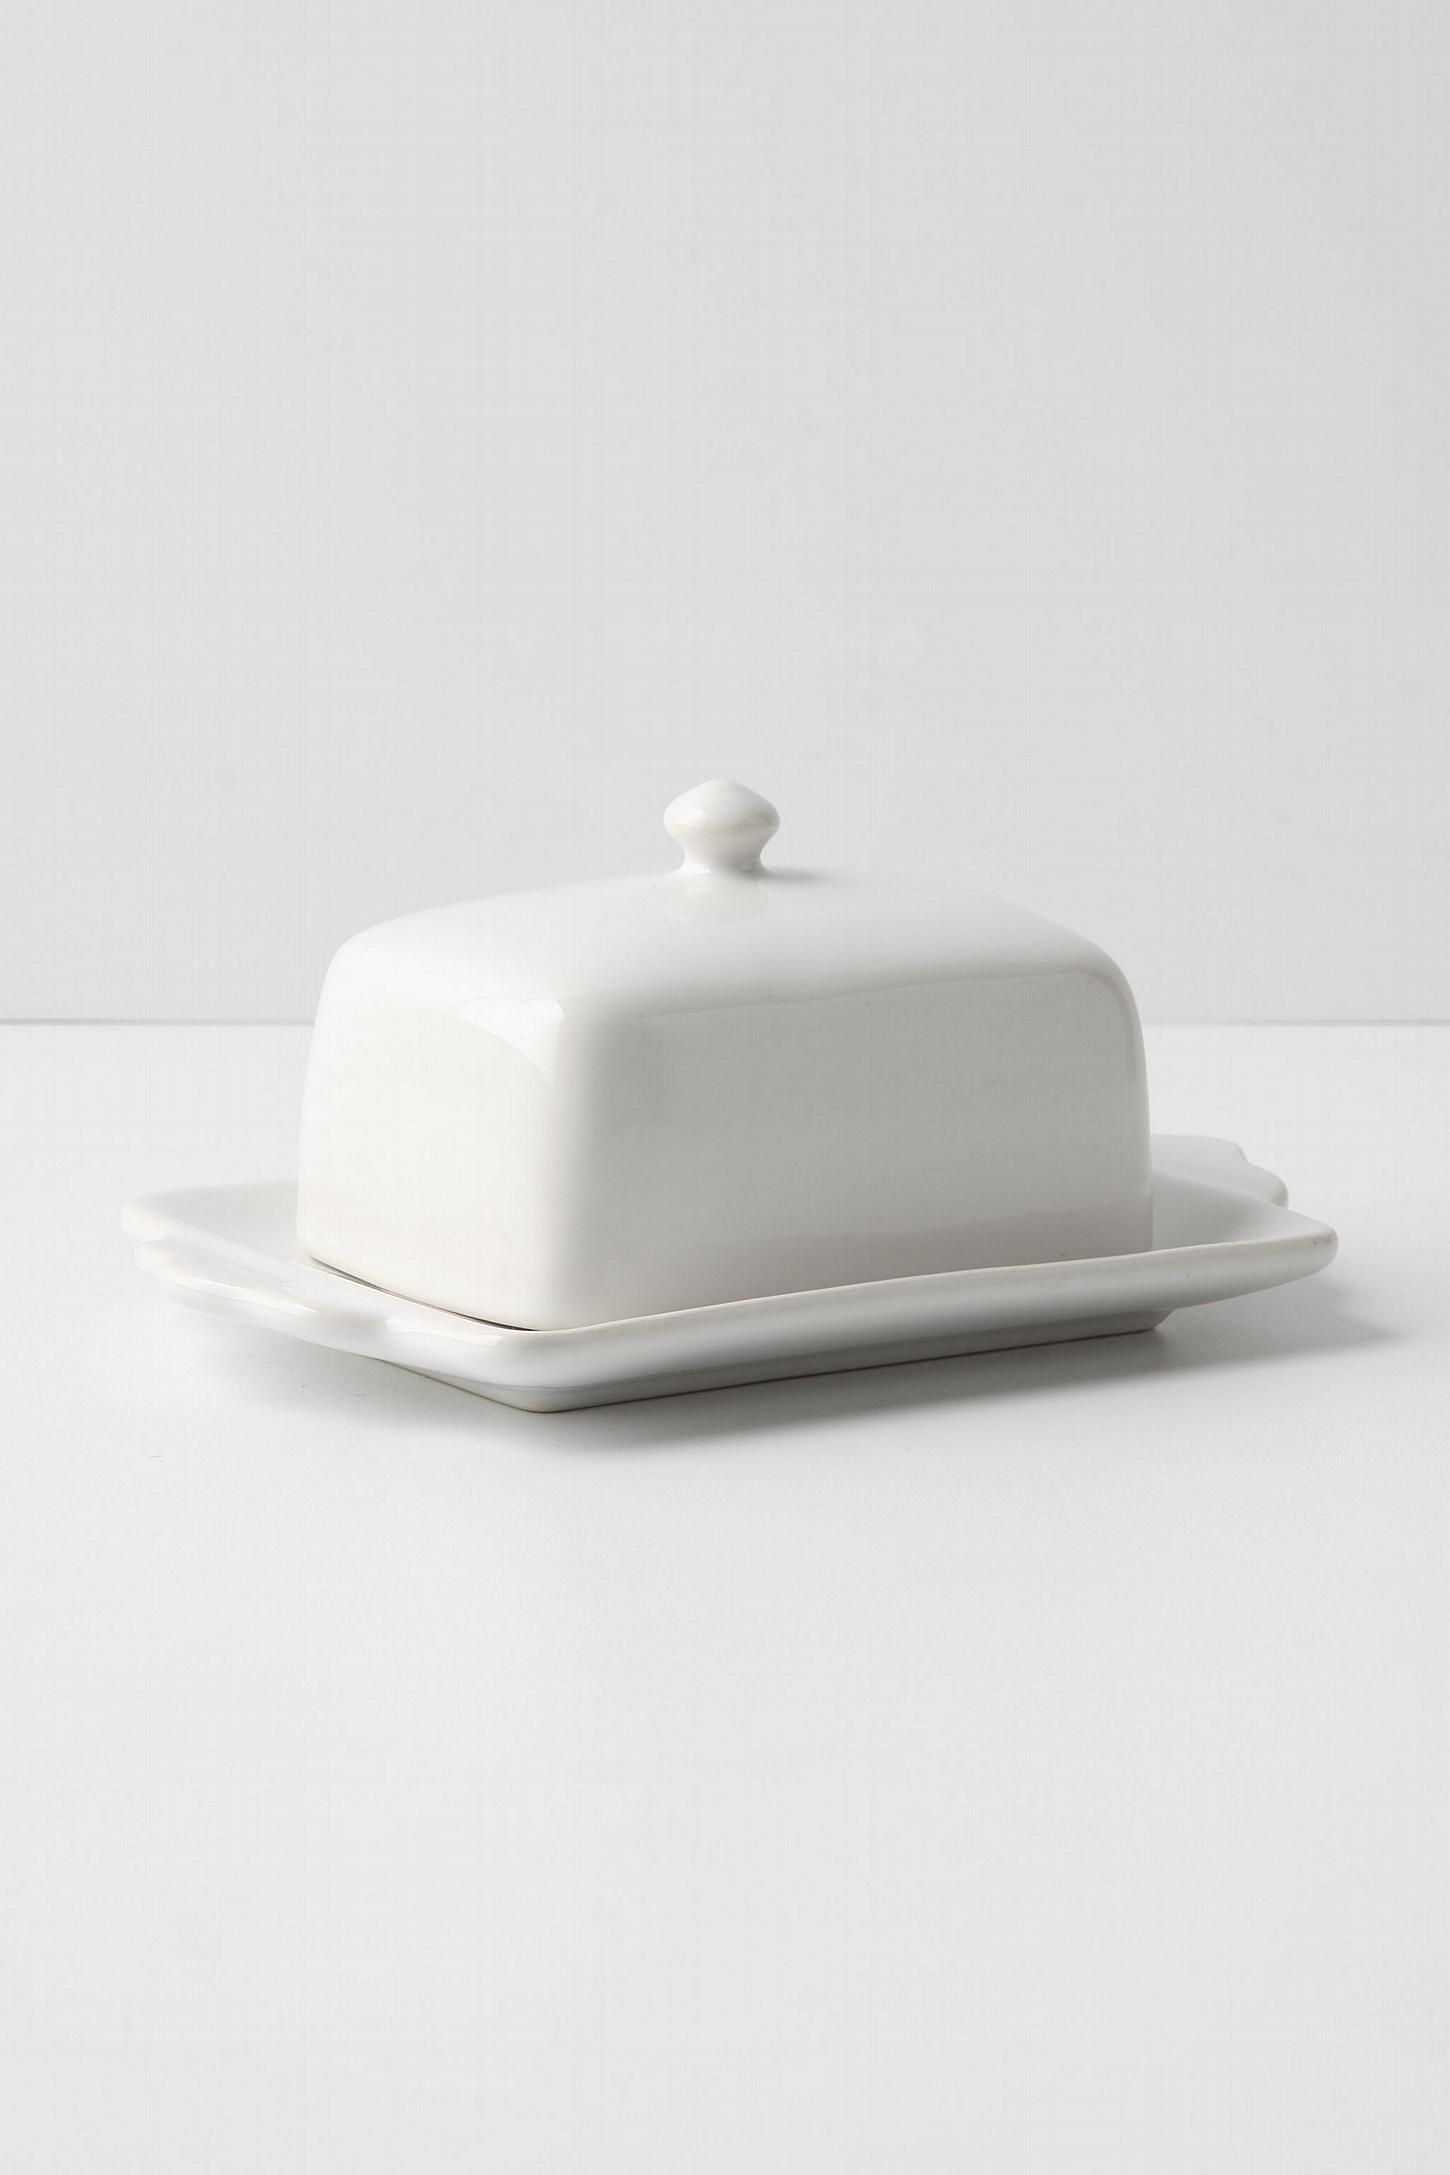 Tea And Toast Butter Dish Butter Dish Dishes Anthropologie Kitchen